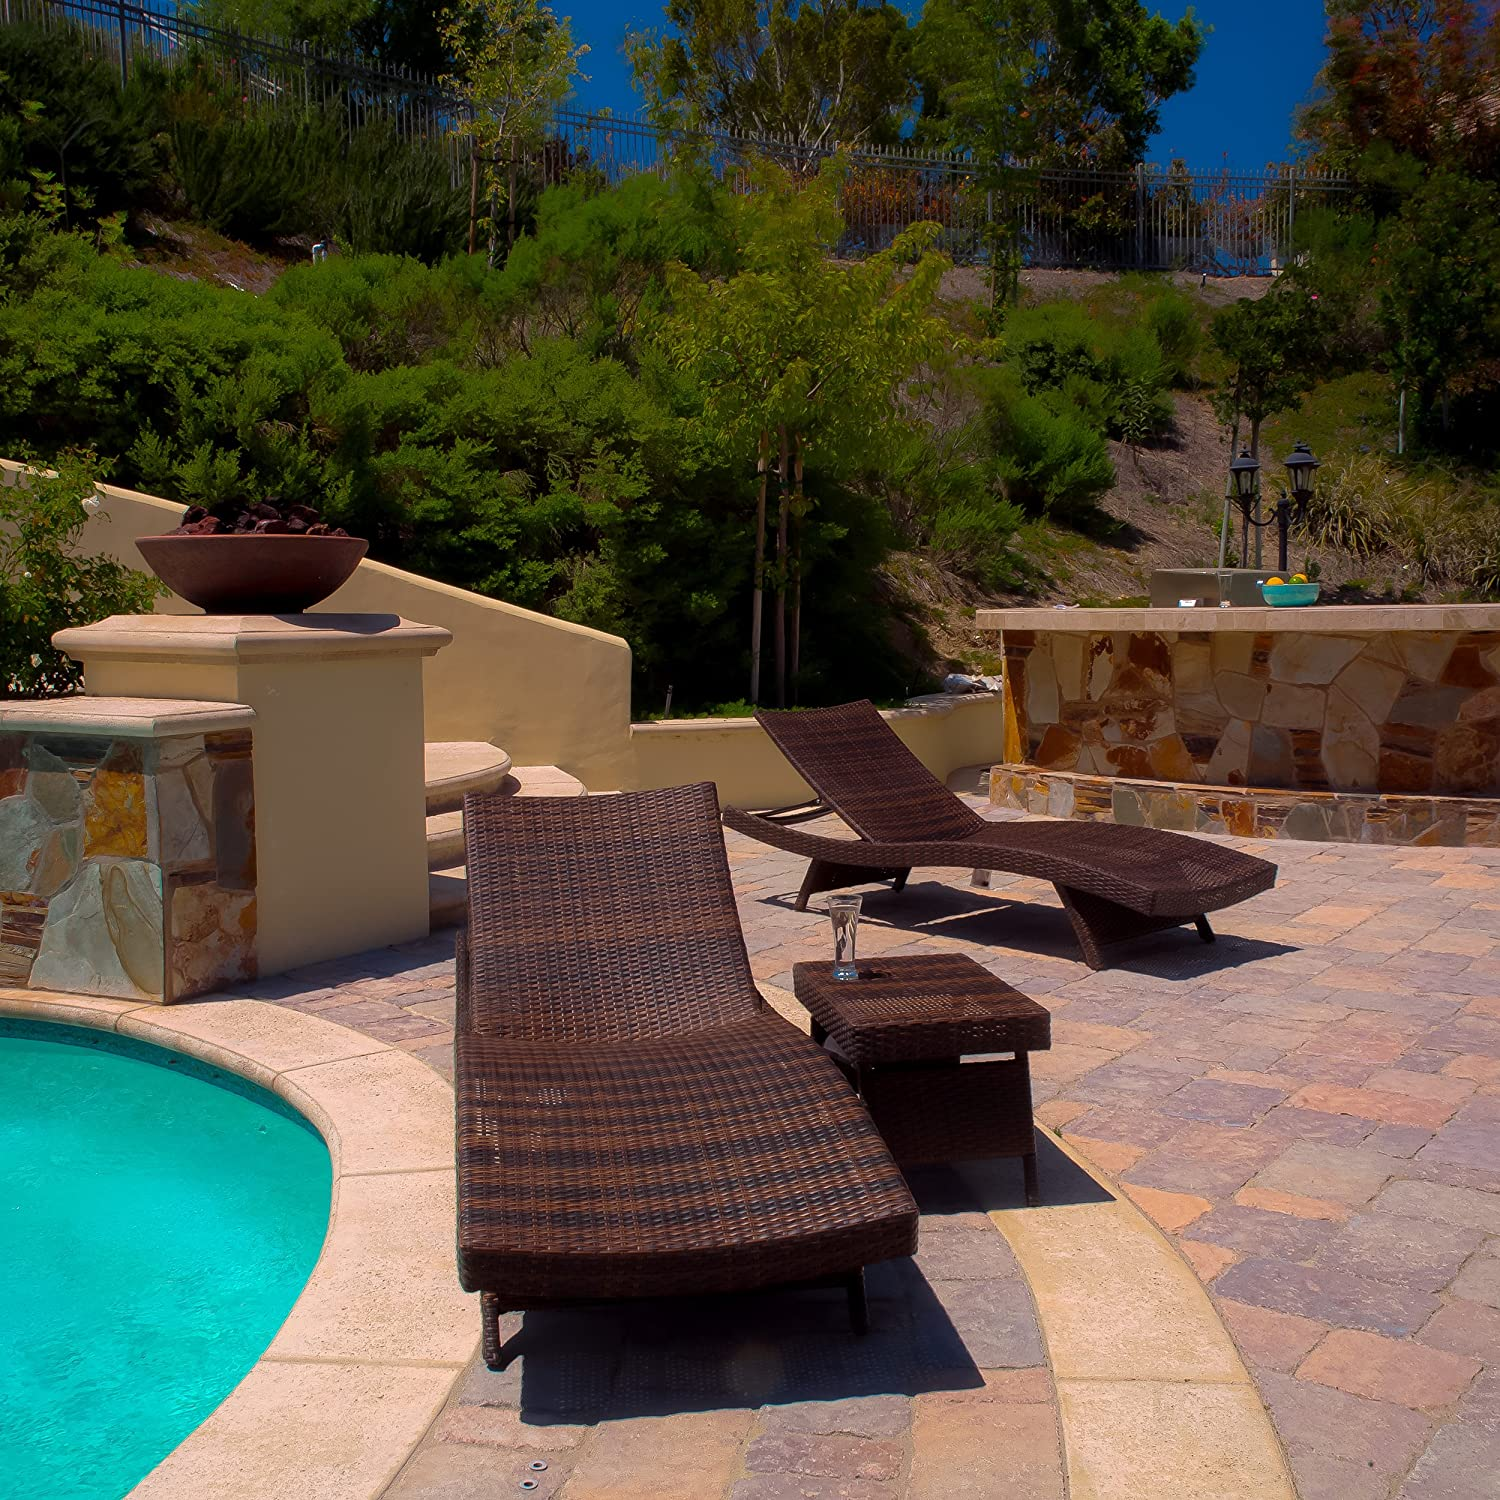 Top 10 Best Outdoor Reclining Lounge Chair for Pool and Patio 2016